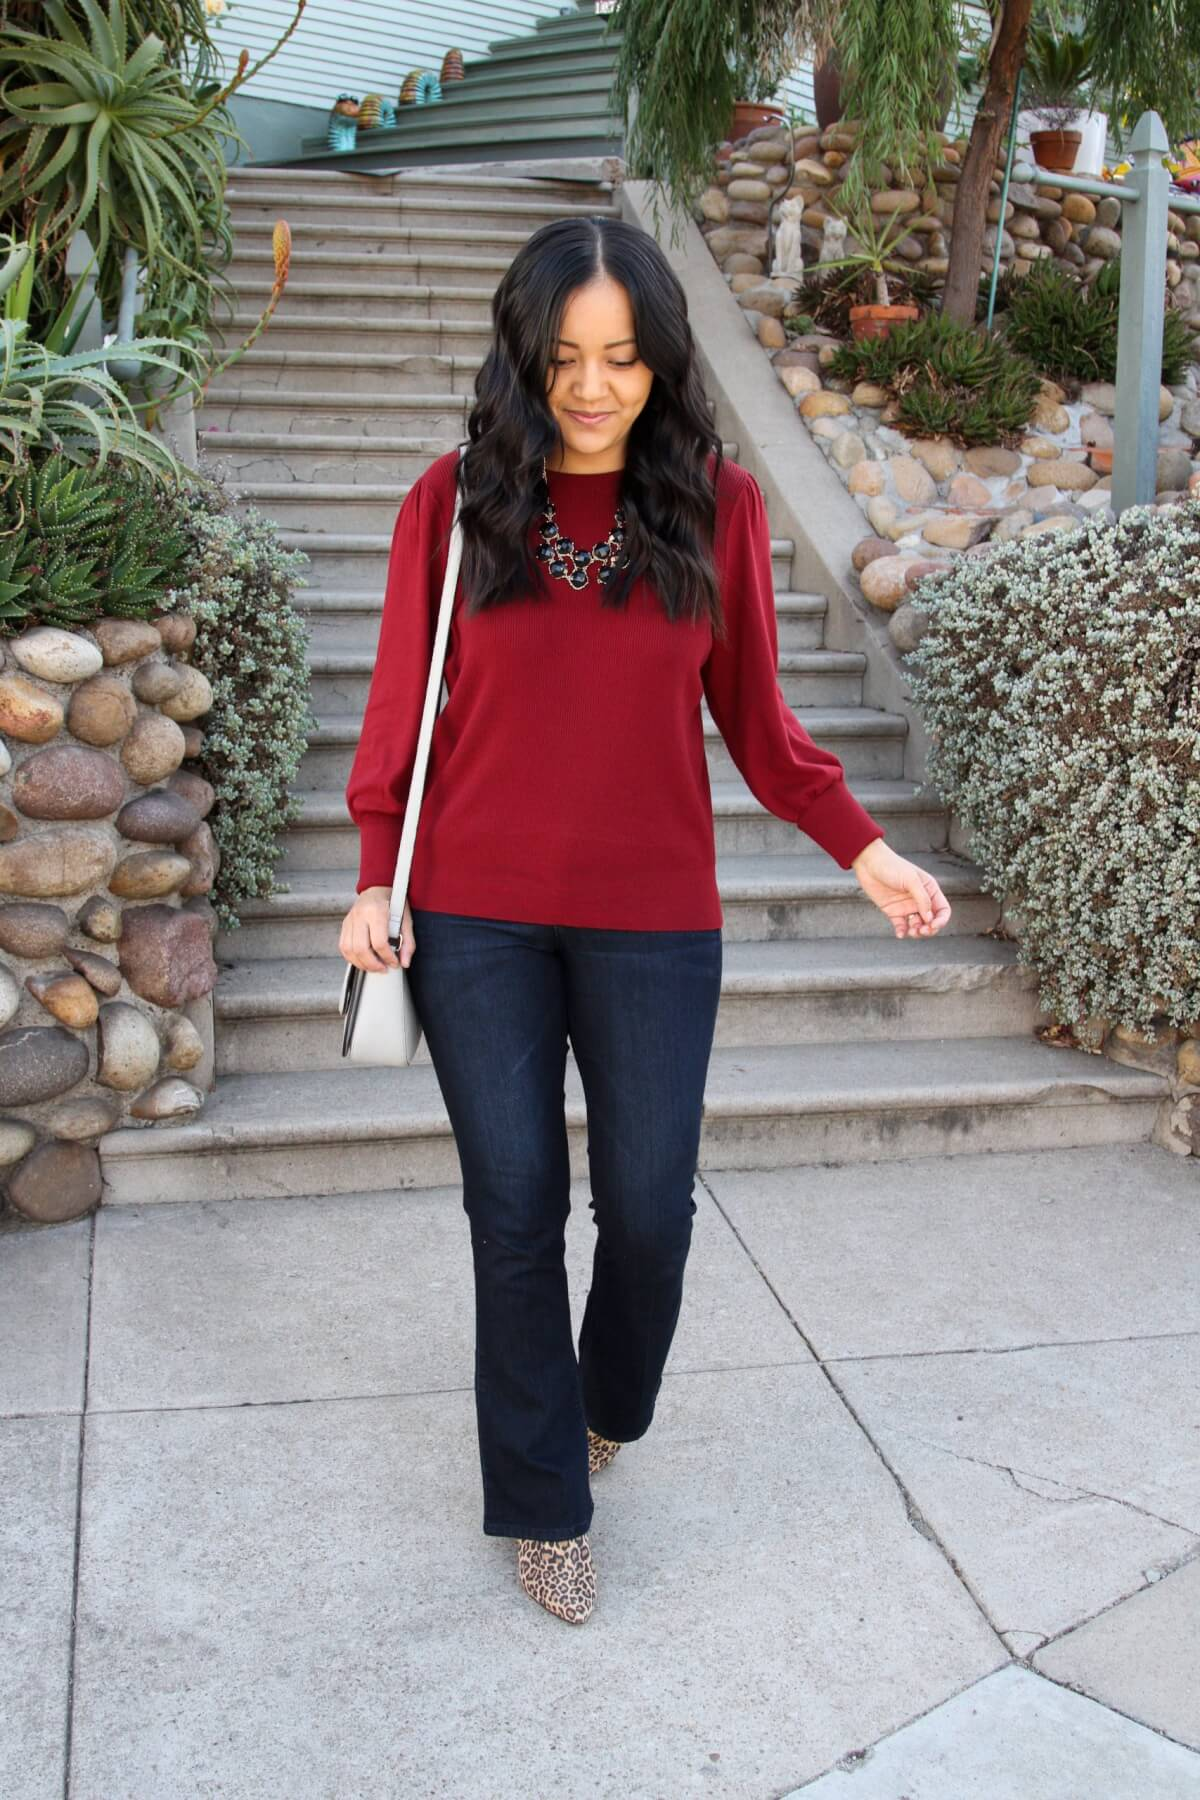 Fall Bootcut Jeans Outfit: red sweater + bootcut jeans + leopard print booties + grey crossbody bag + black statement necklace